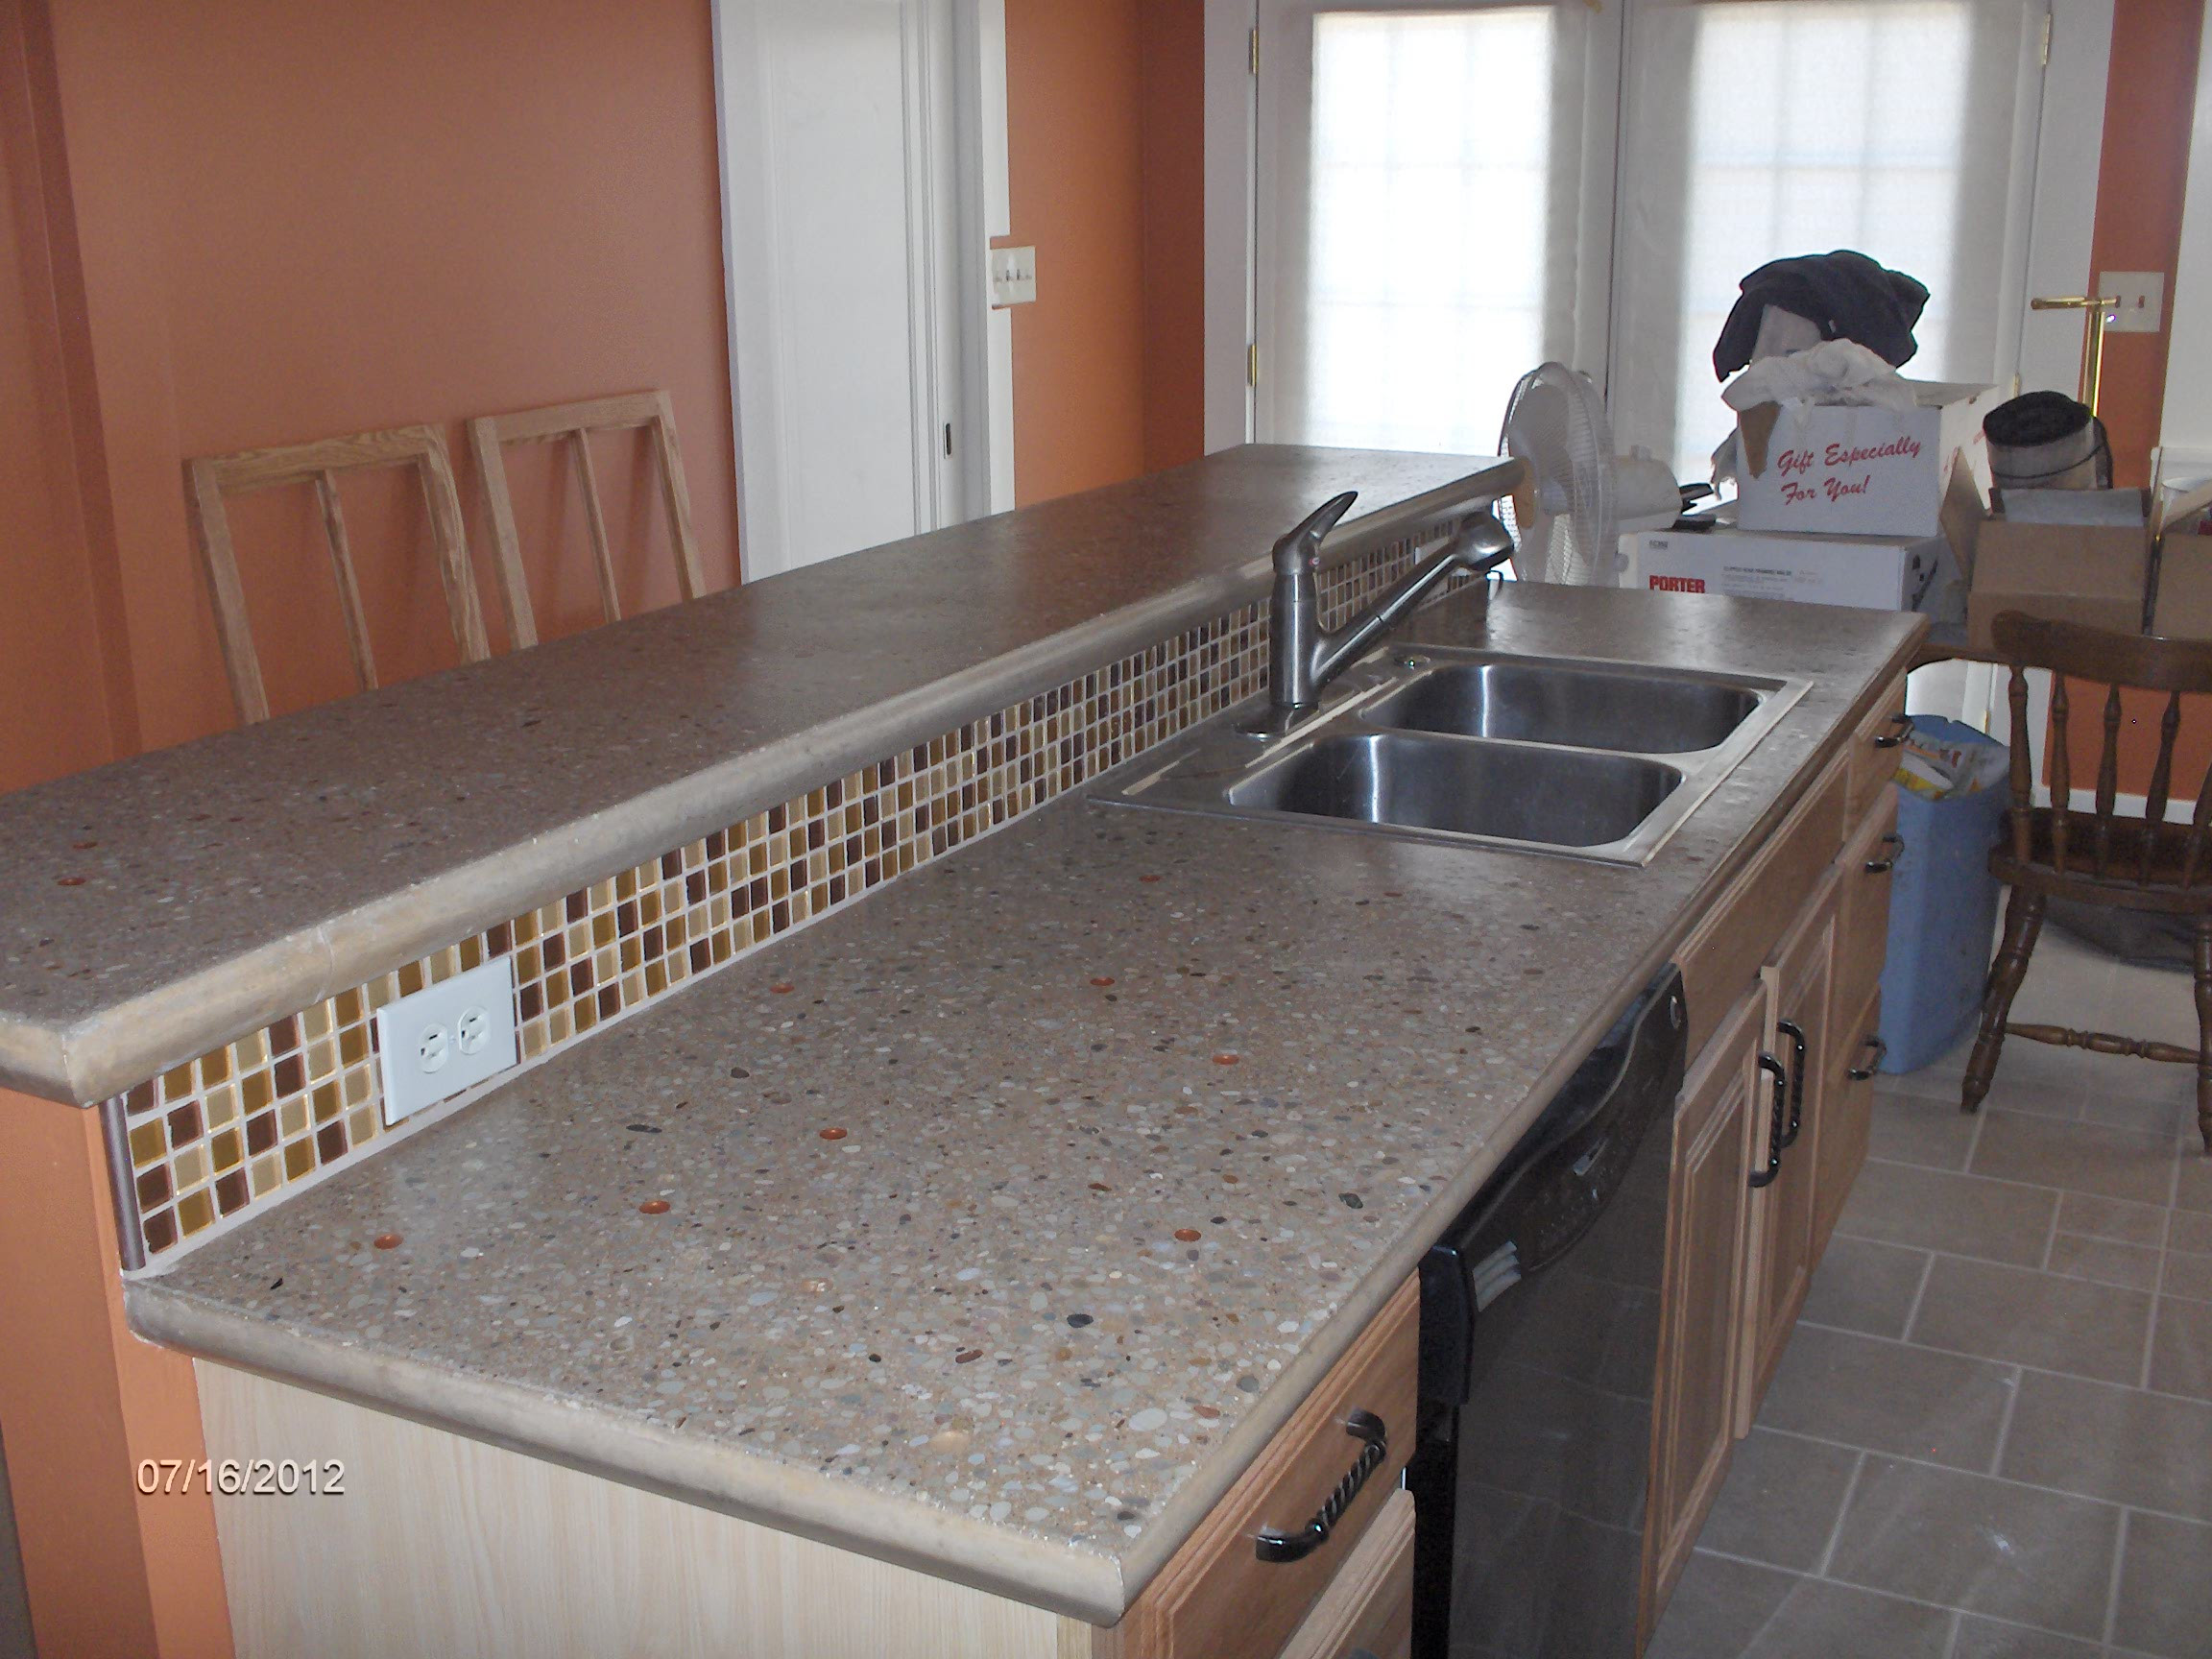 Best ideas about DIY Concrete Countertops . Save or Pin Building And Installing Diy Concrete Countertops Now.